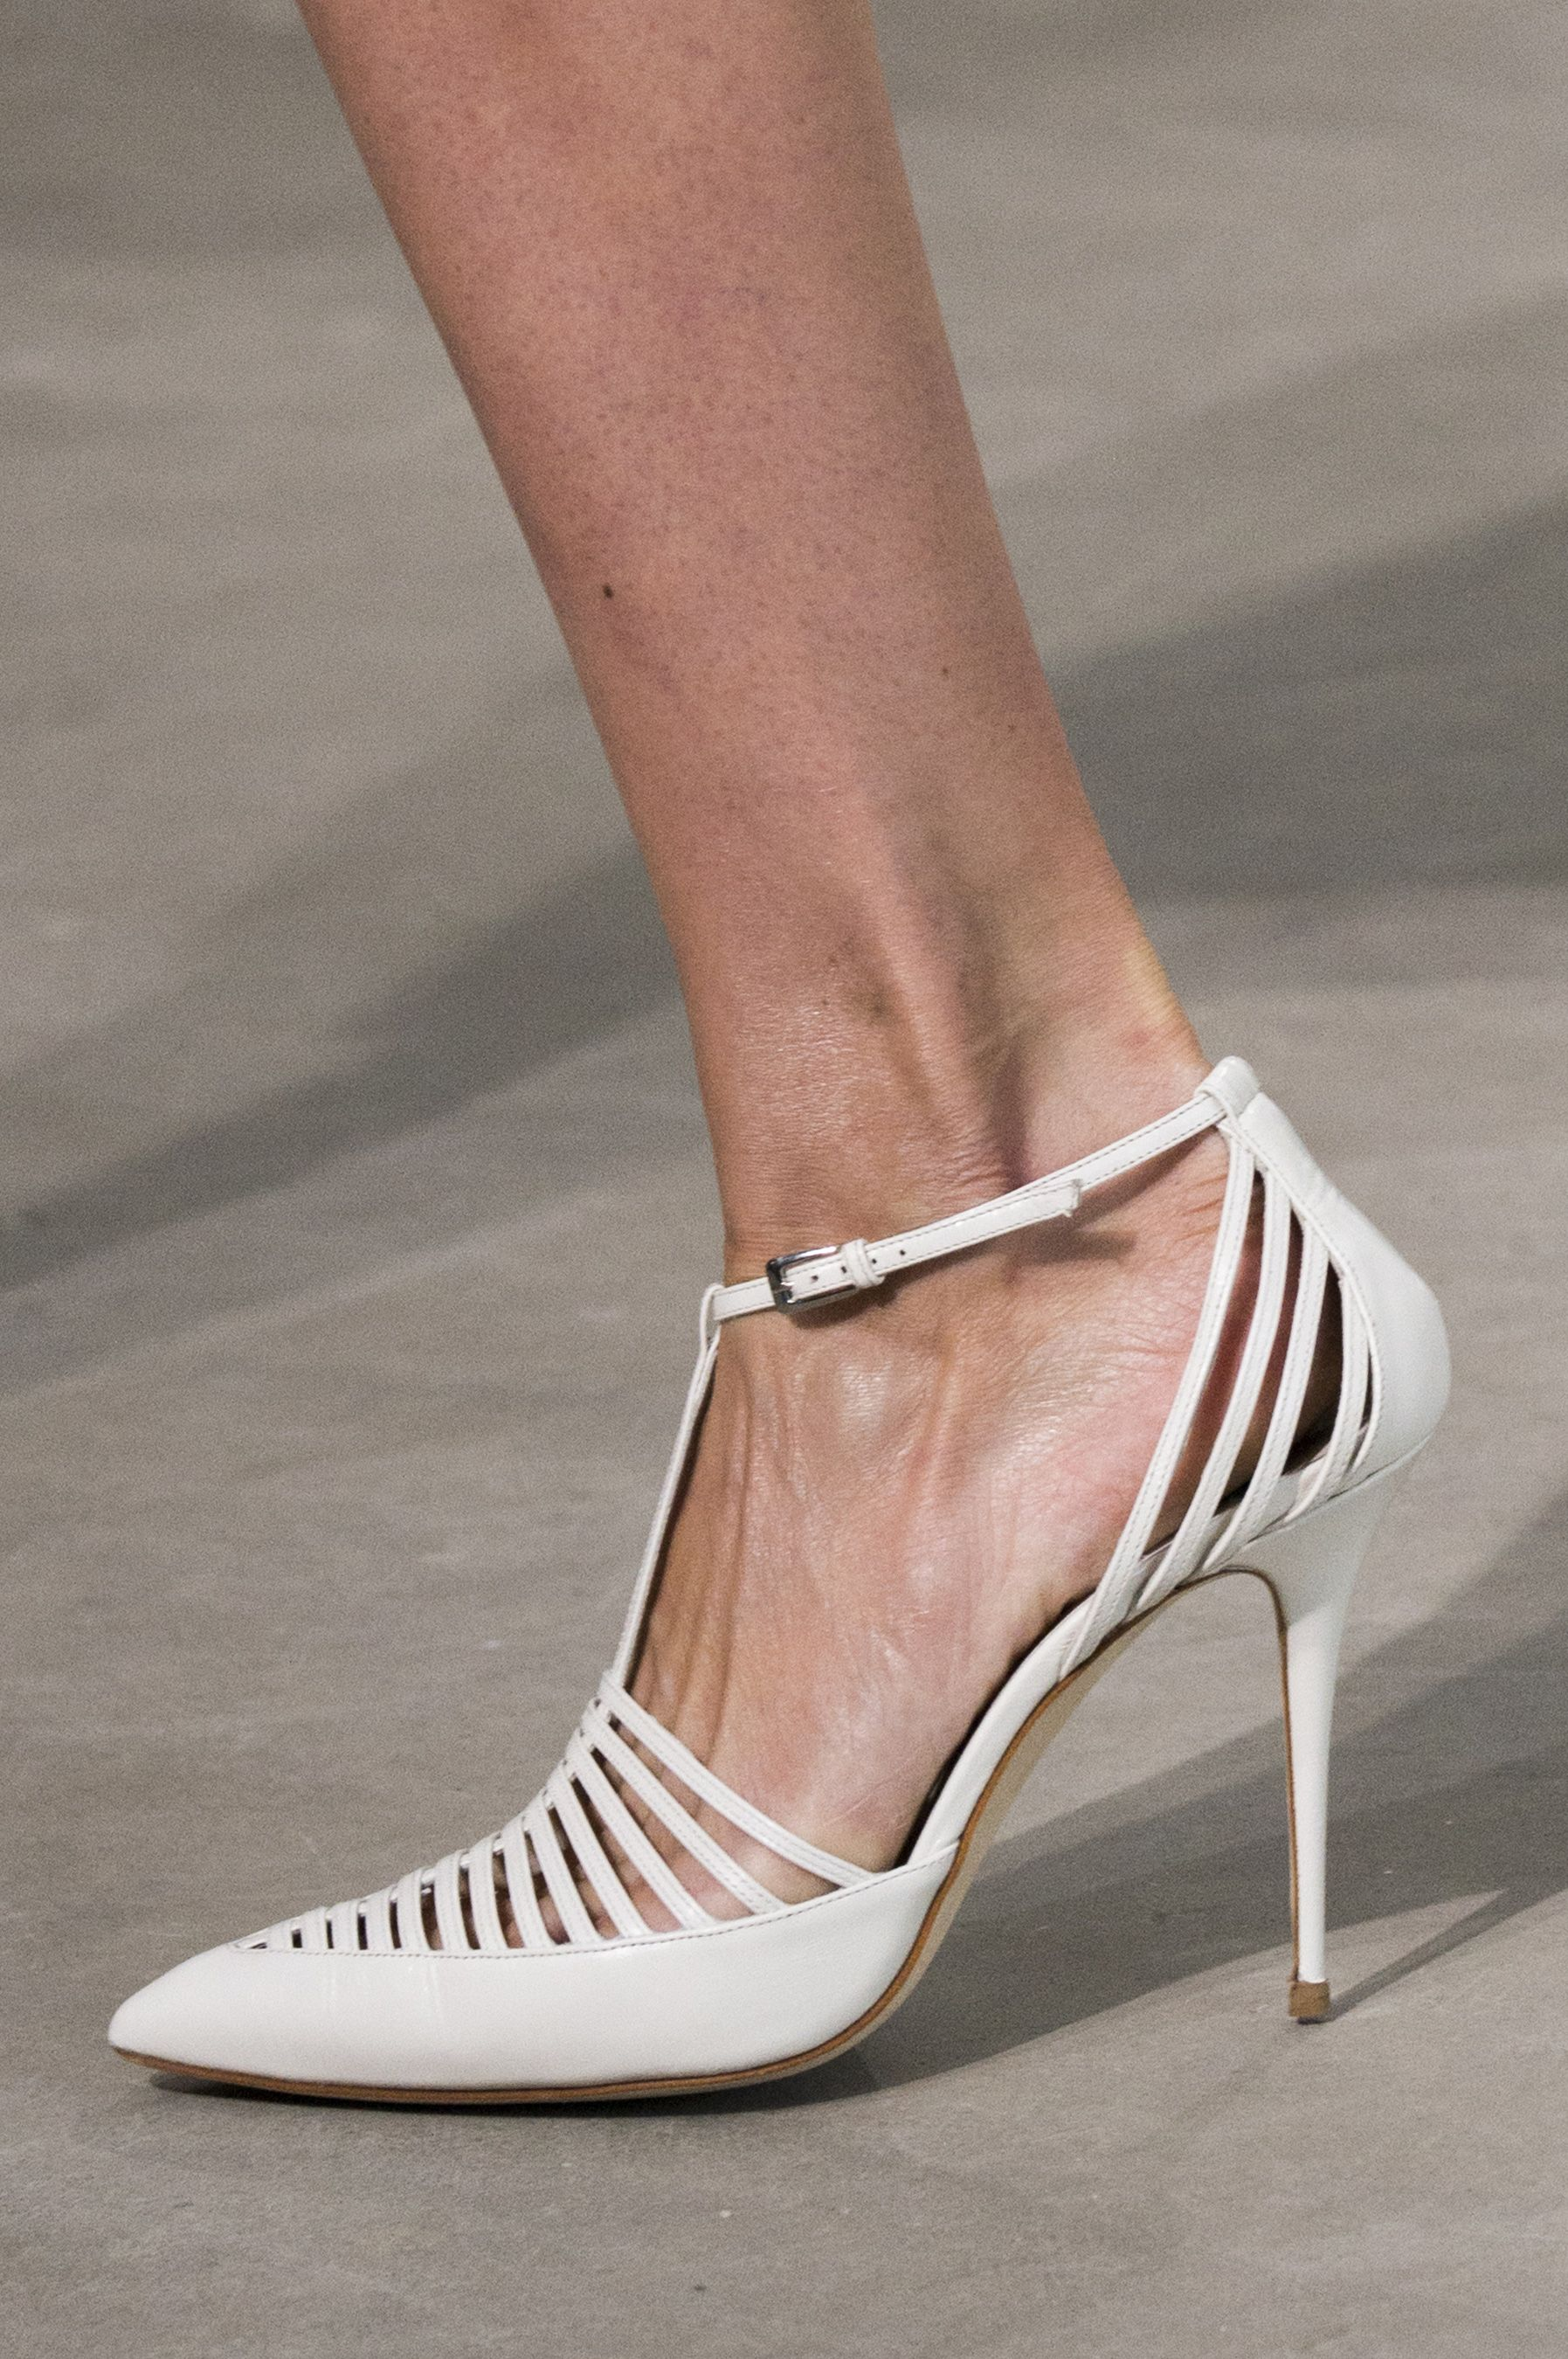 Jason Wu Spring 2018 Fashion Show Details Hot Shoes Fashion Heels